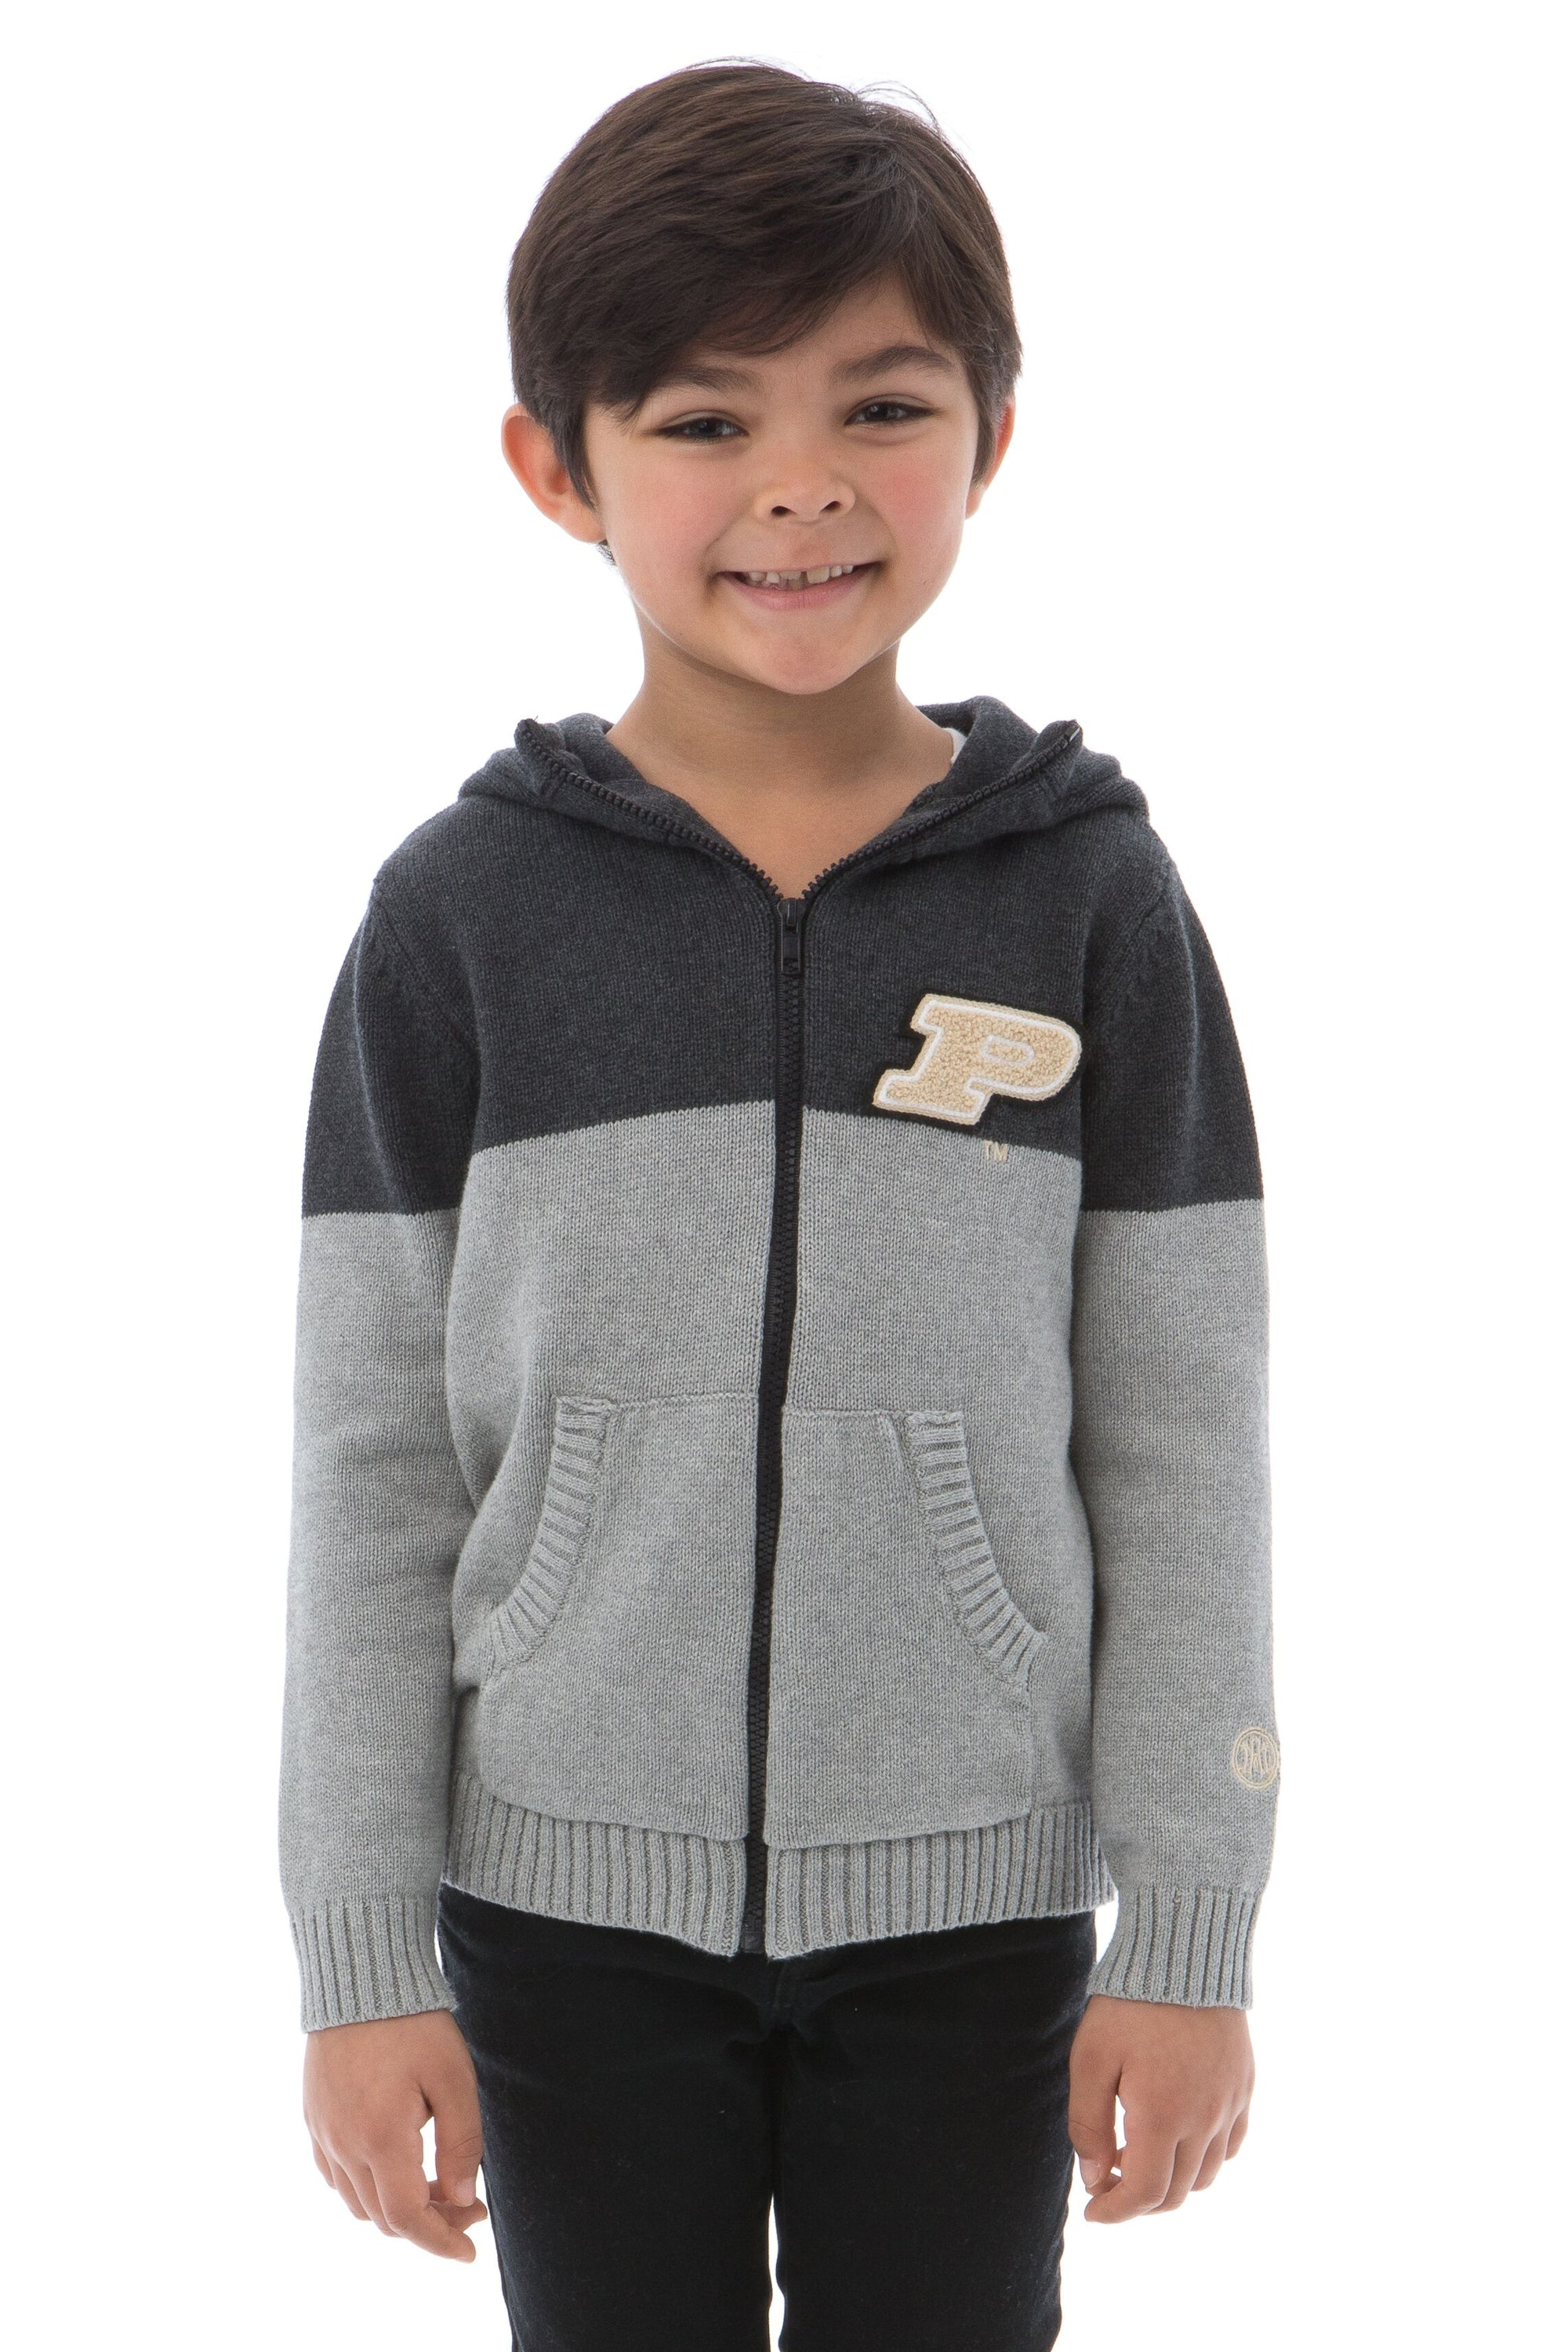 PURDUE UNIVERSITY Boilermakers Boy's Color Block Zip